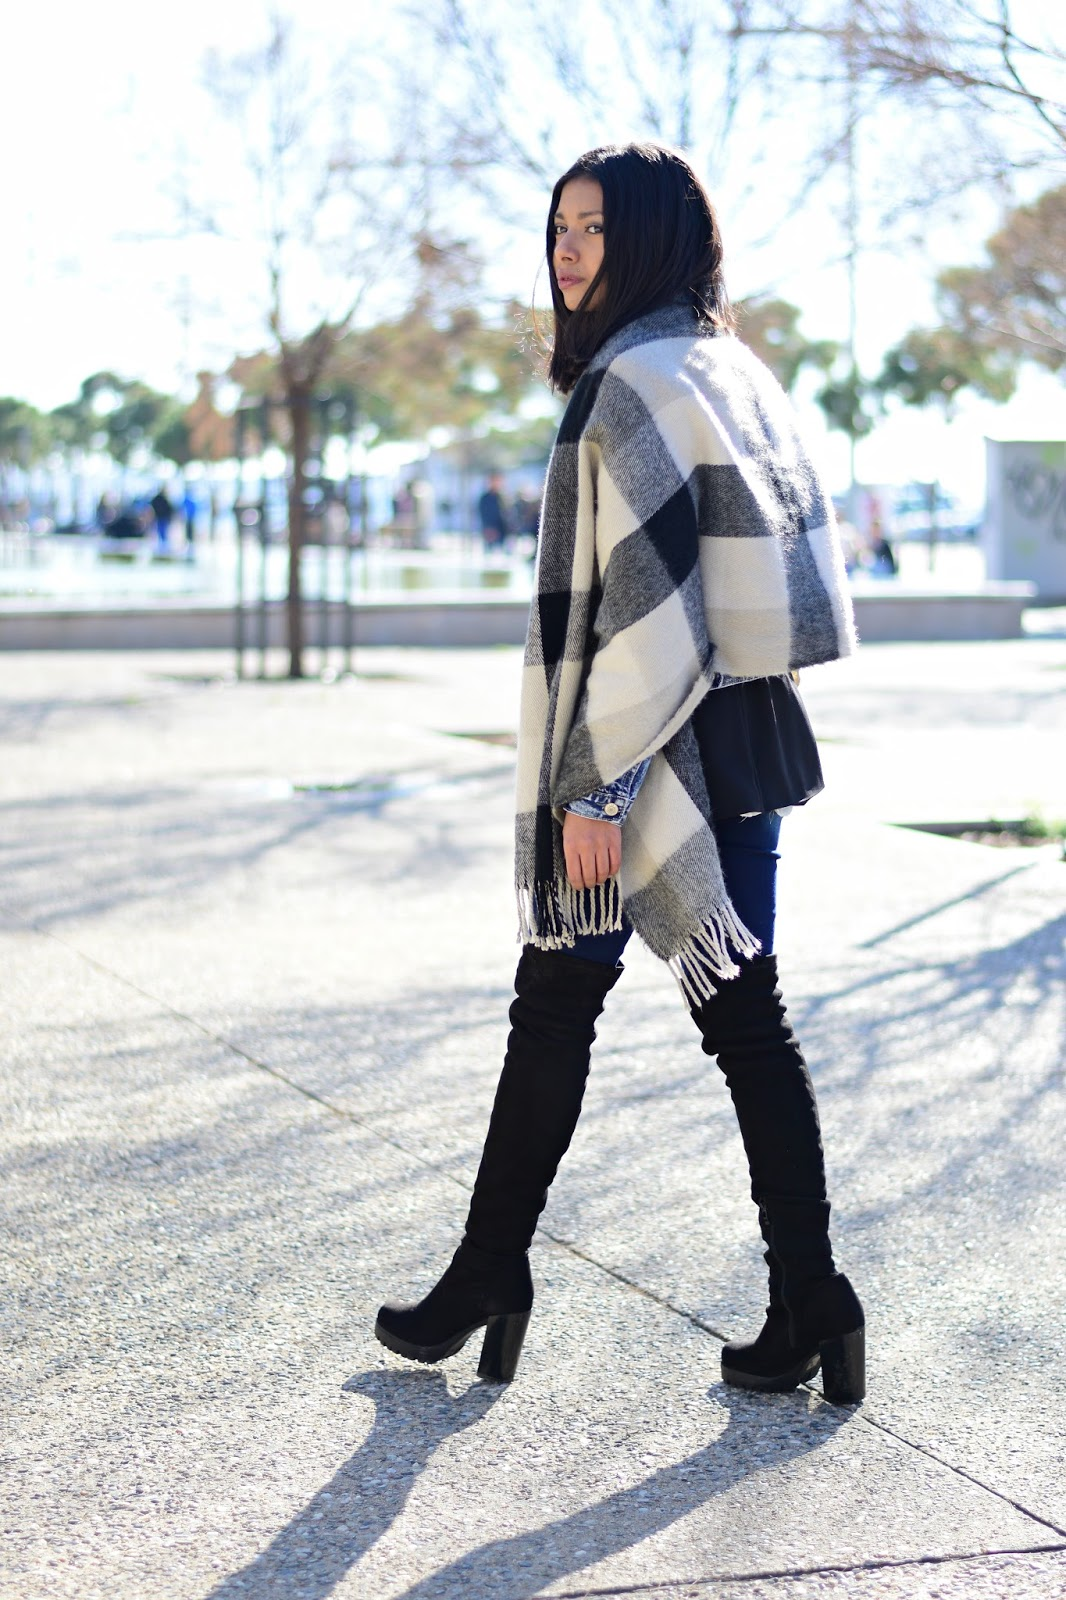 k meets style How to style your blanket scarf in Autumn